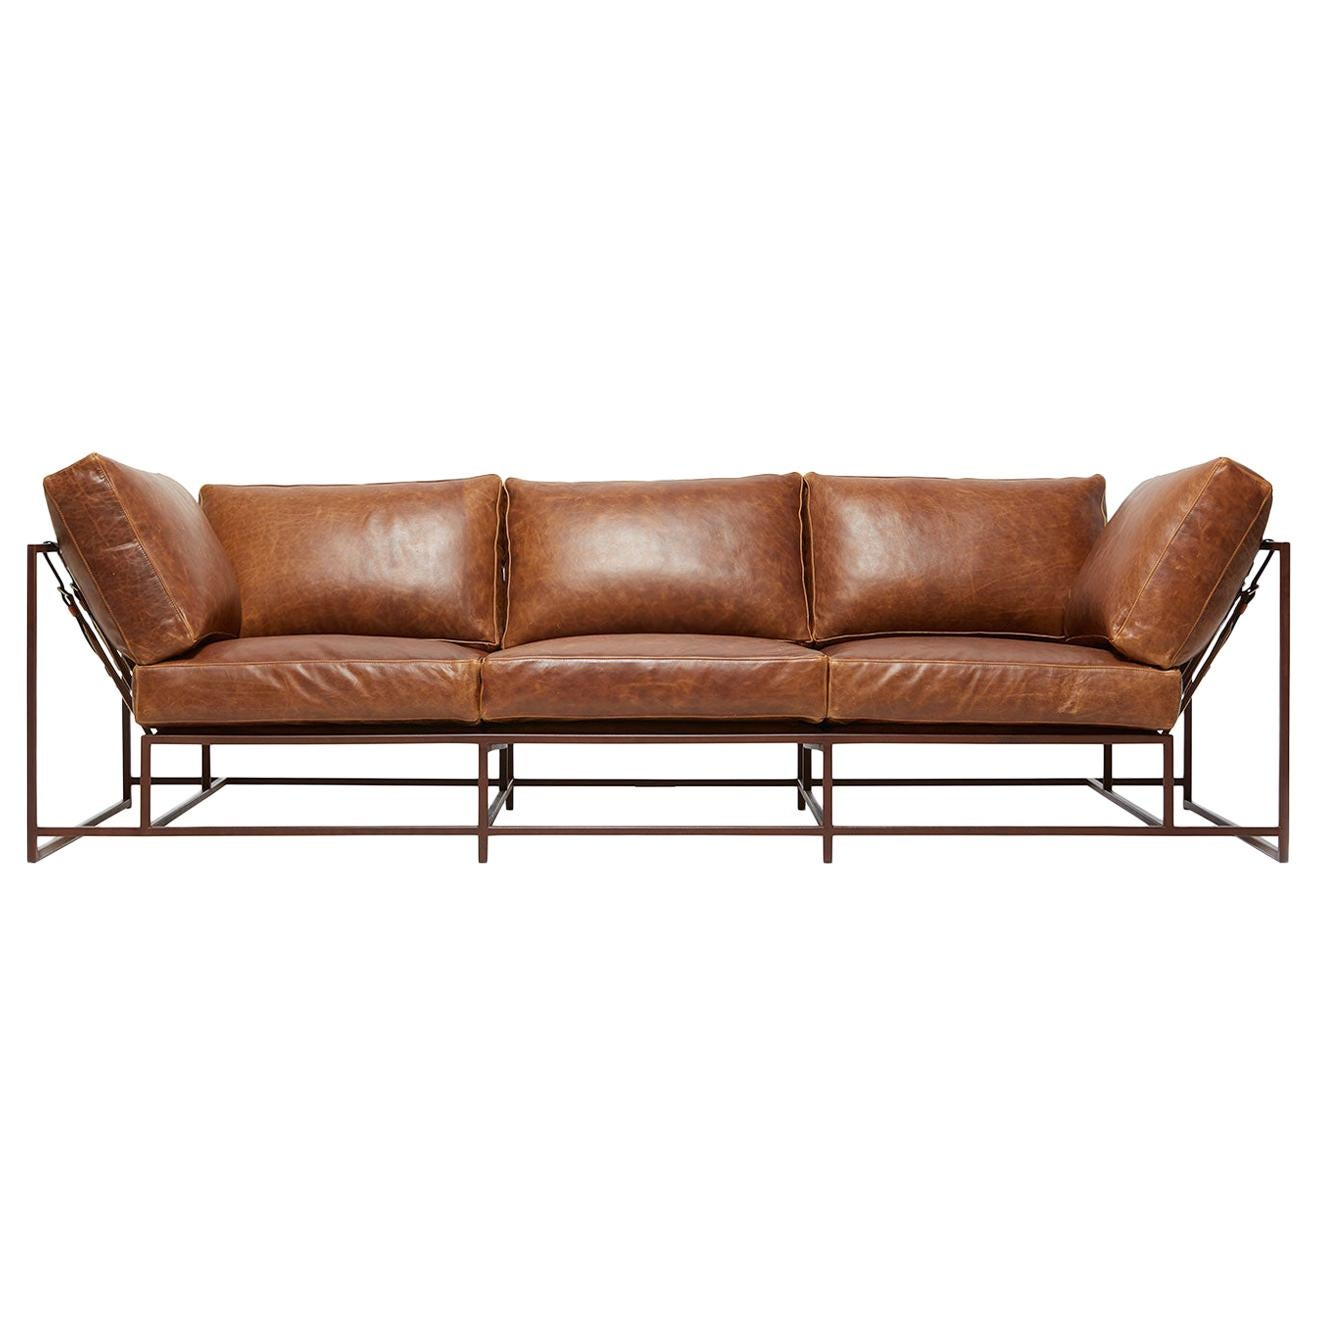 Potomac Tan Leather and Marbled Rust Sofa